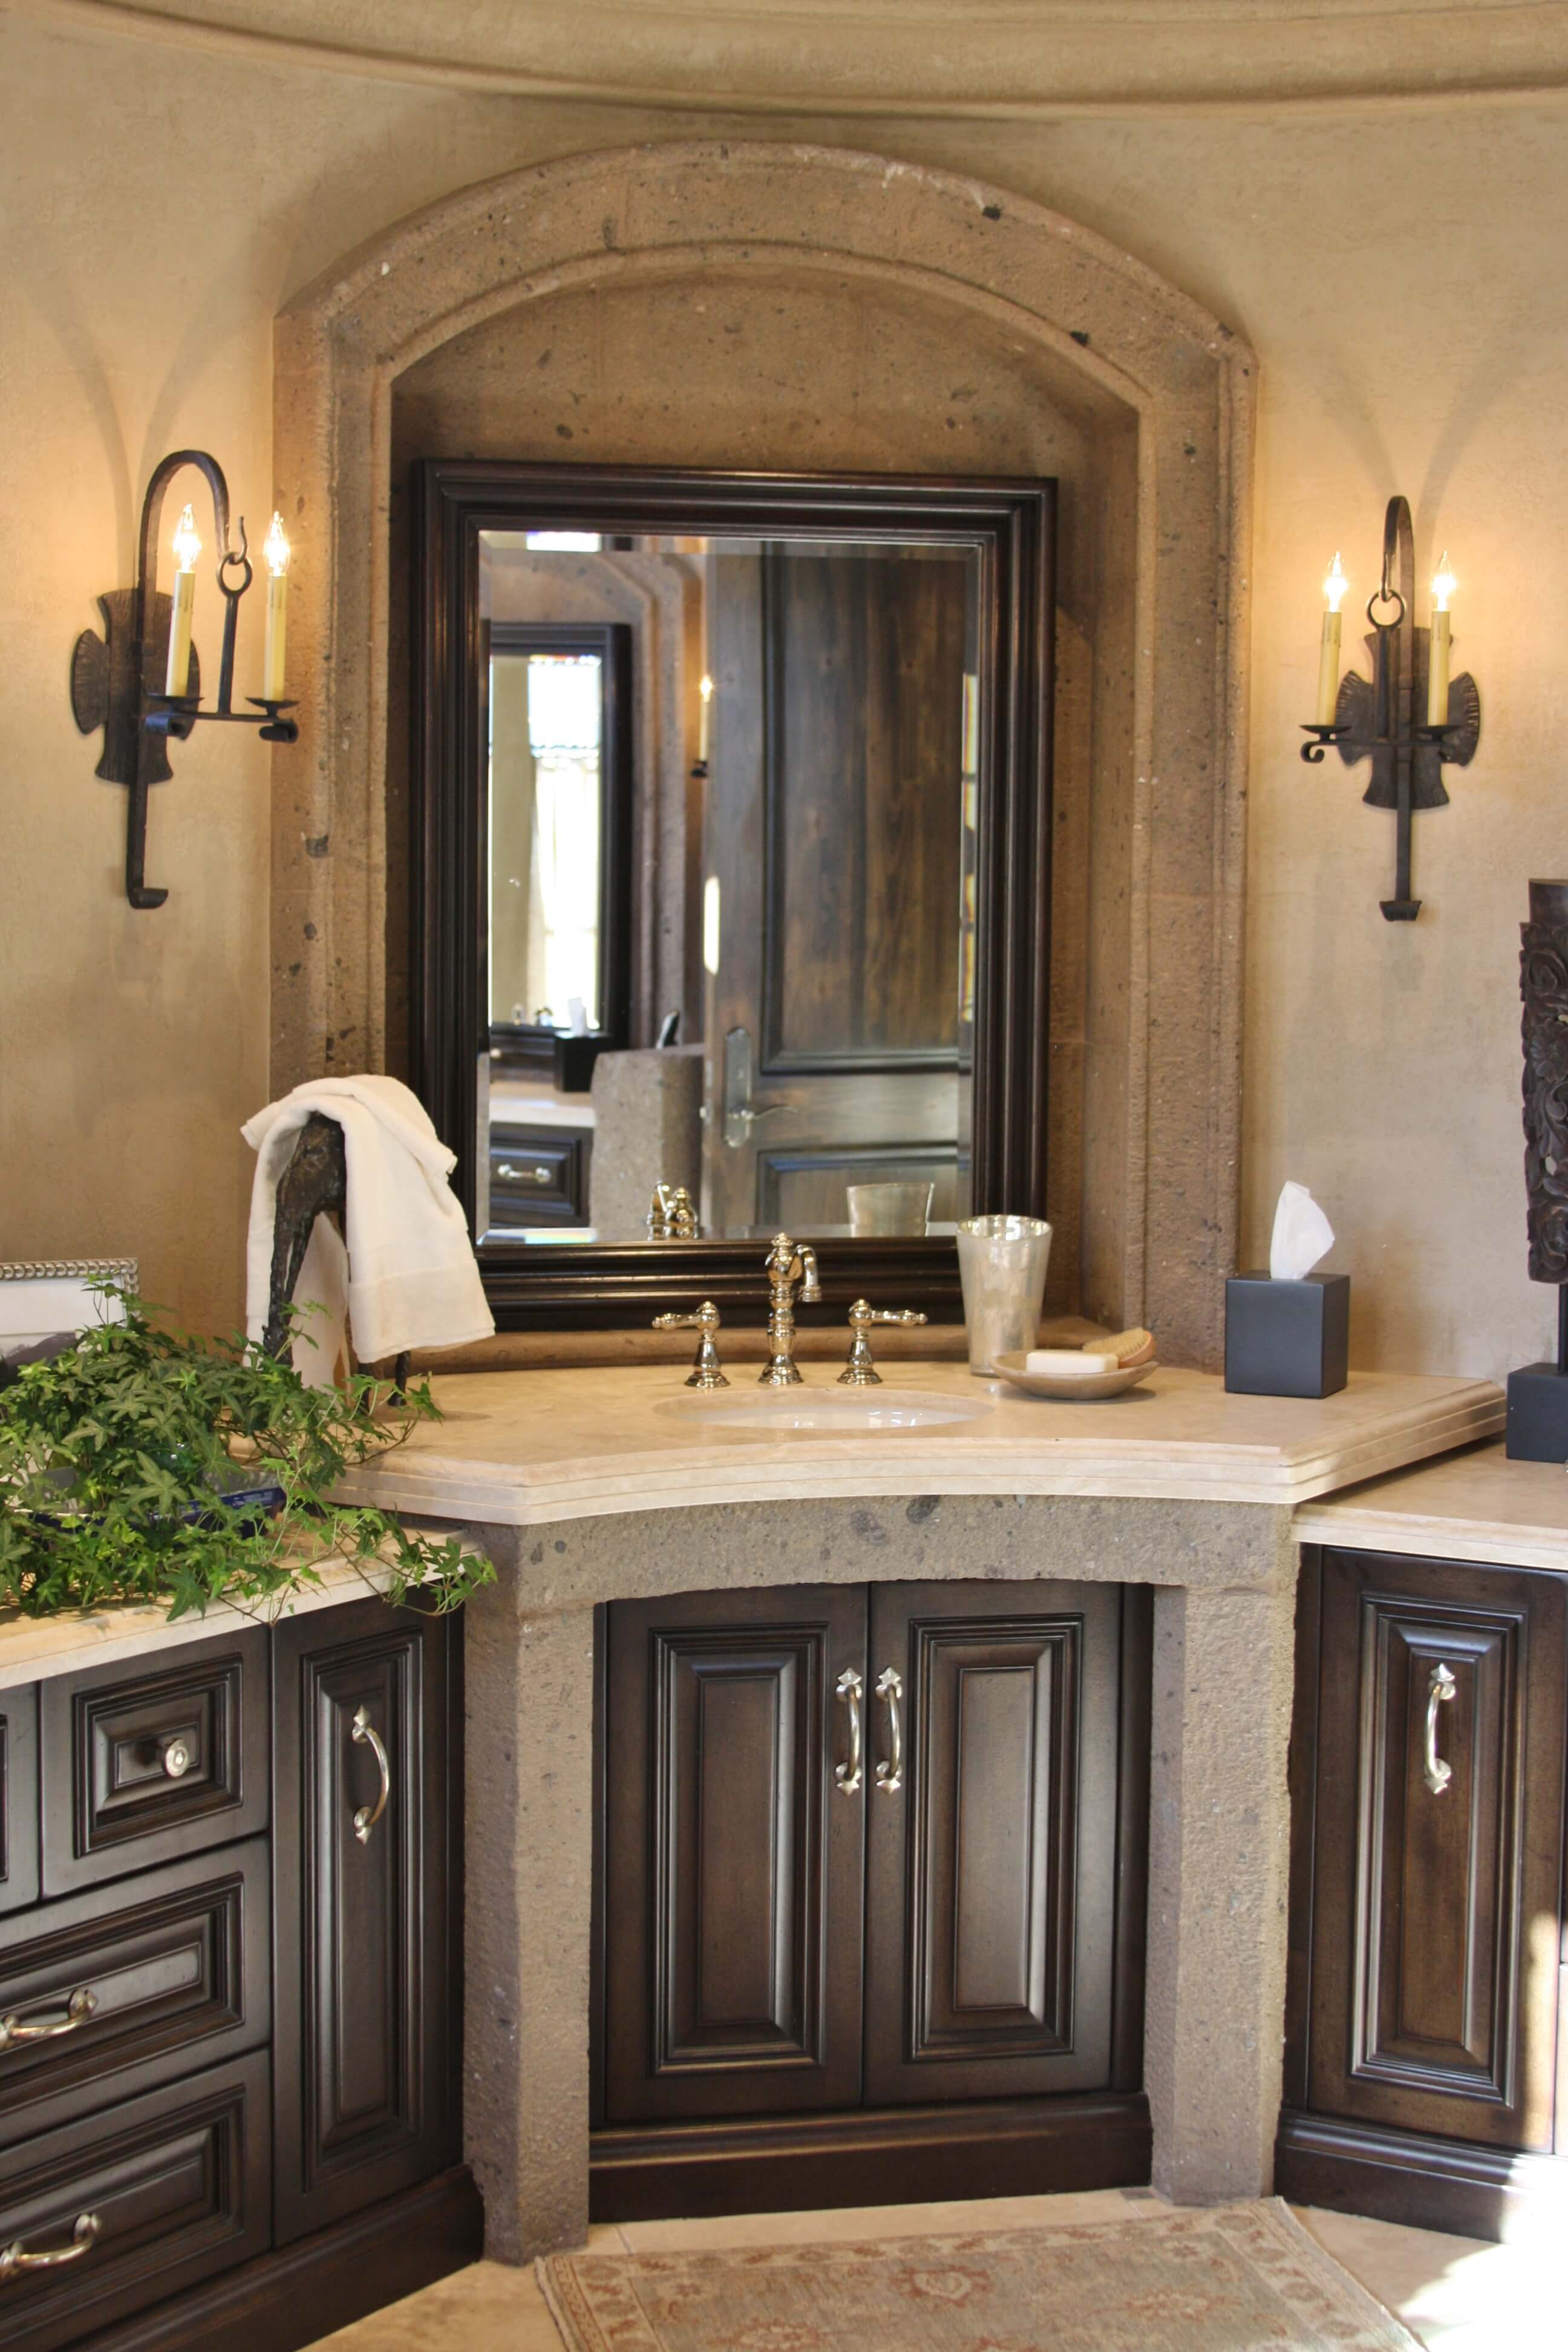 14-Vanity-Arched-Mirror-Surround-in-Tobacco-Cantera-Stone-with-Distressed-Finish